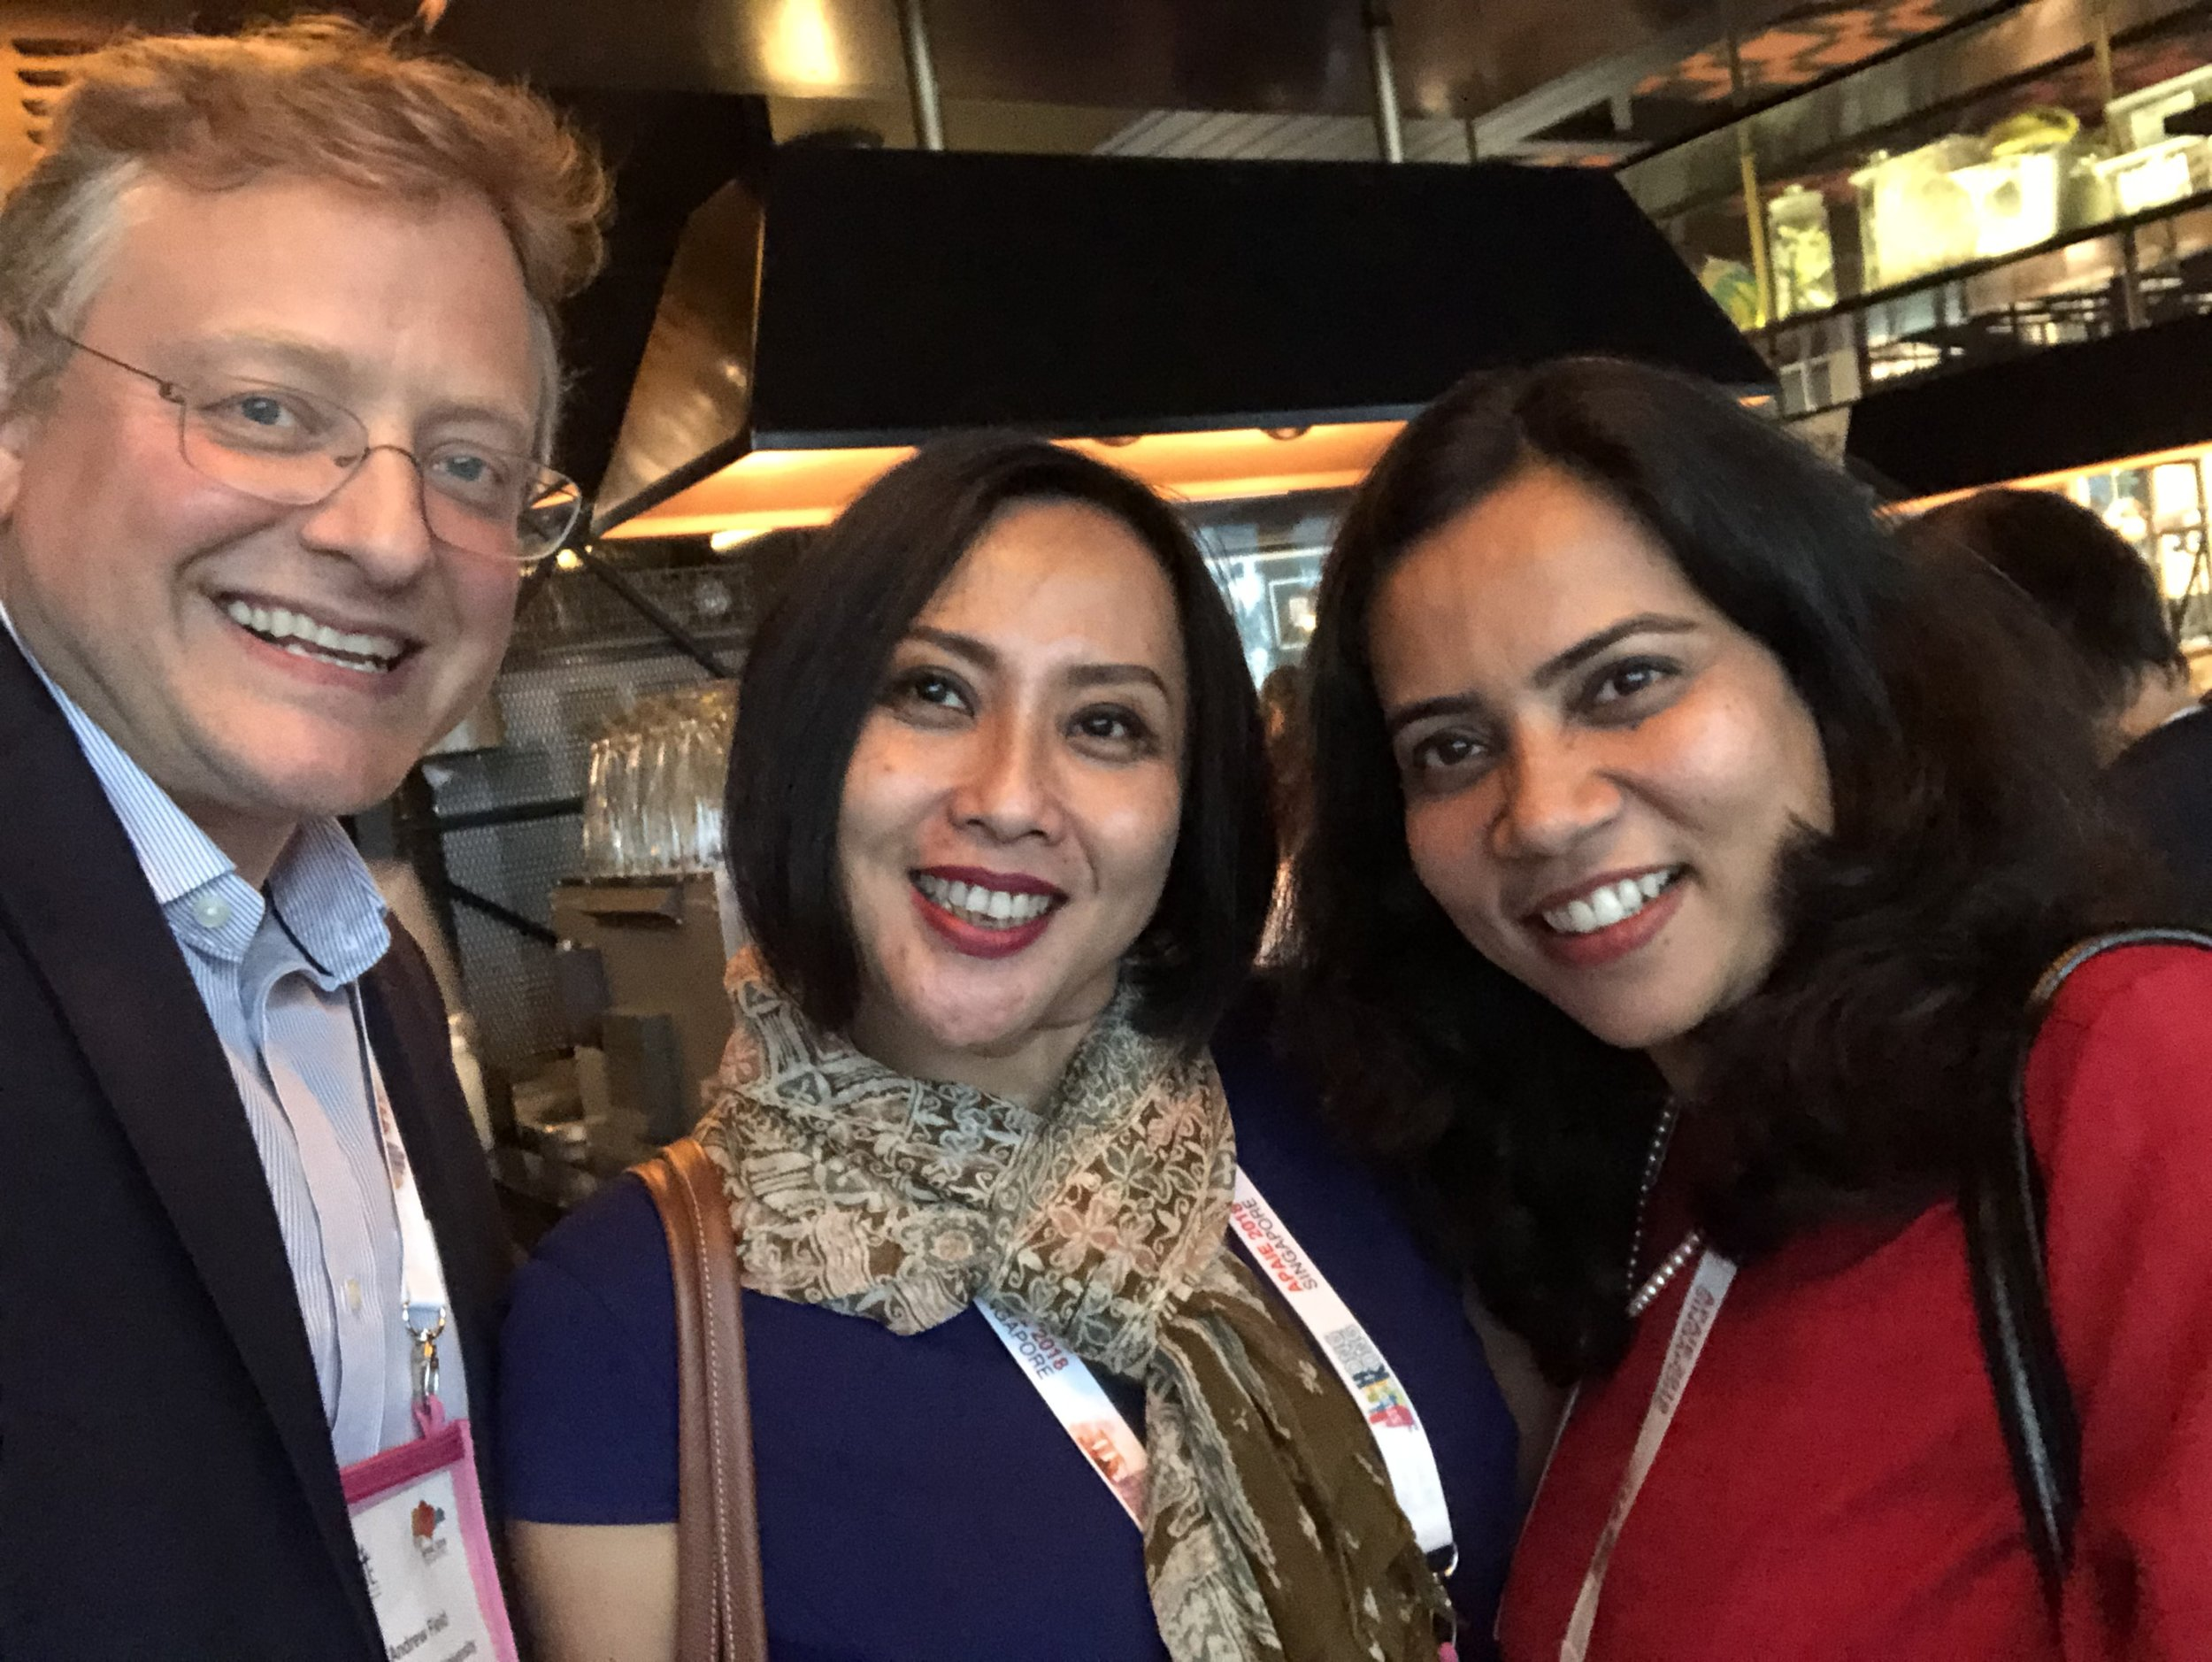 catching up with IIE and Duke colleagues Diana and Namrata